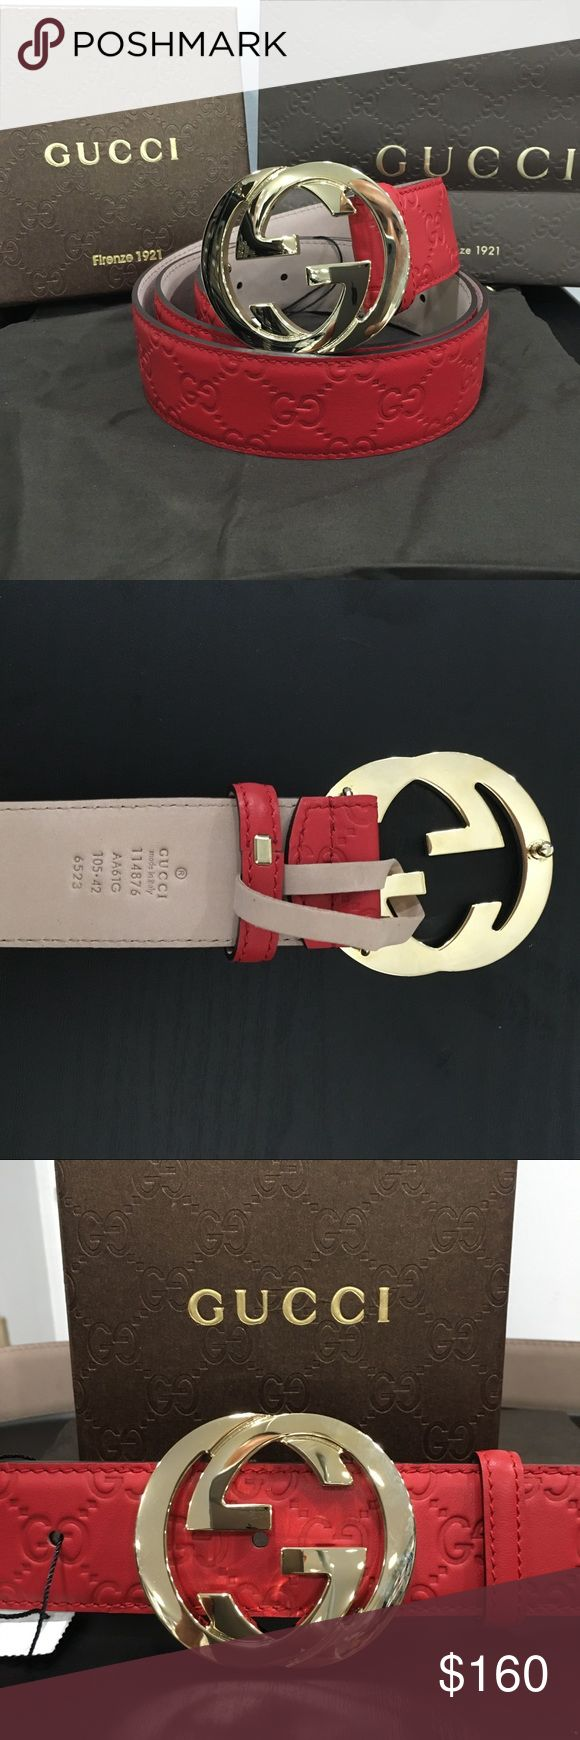 🌟Gucci Men's Red Belt⚡️ Brand new Gucci belt for Men.  Comes with tags, box and dust bag Gucci Accessories Belts